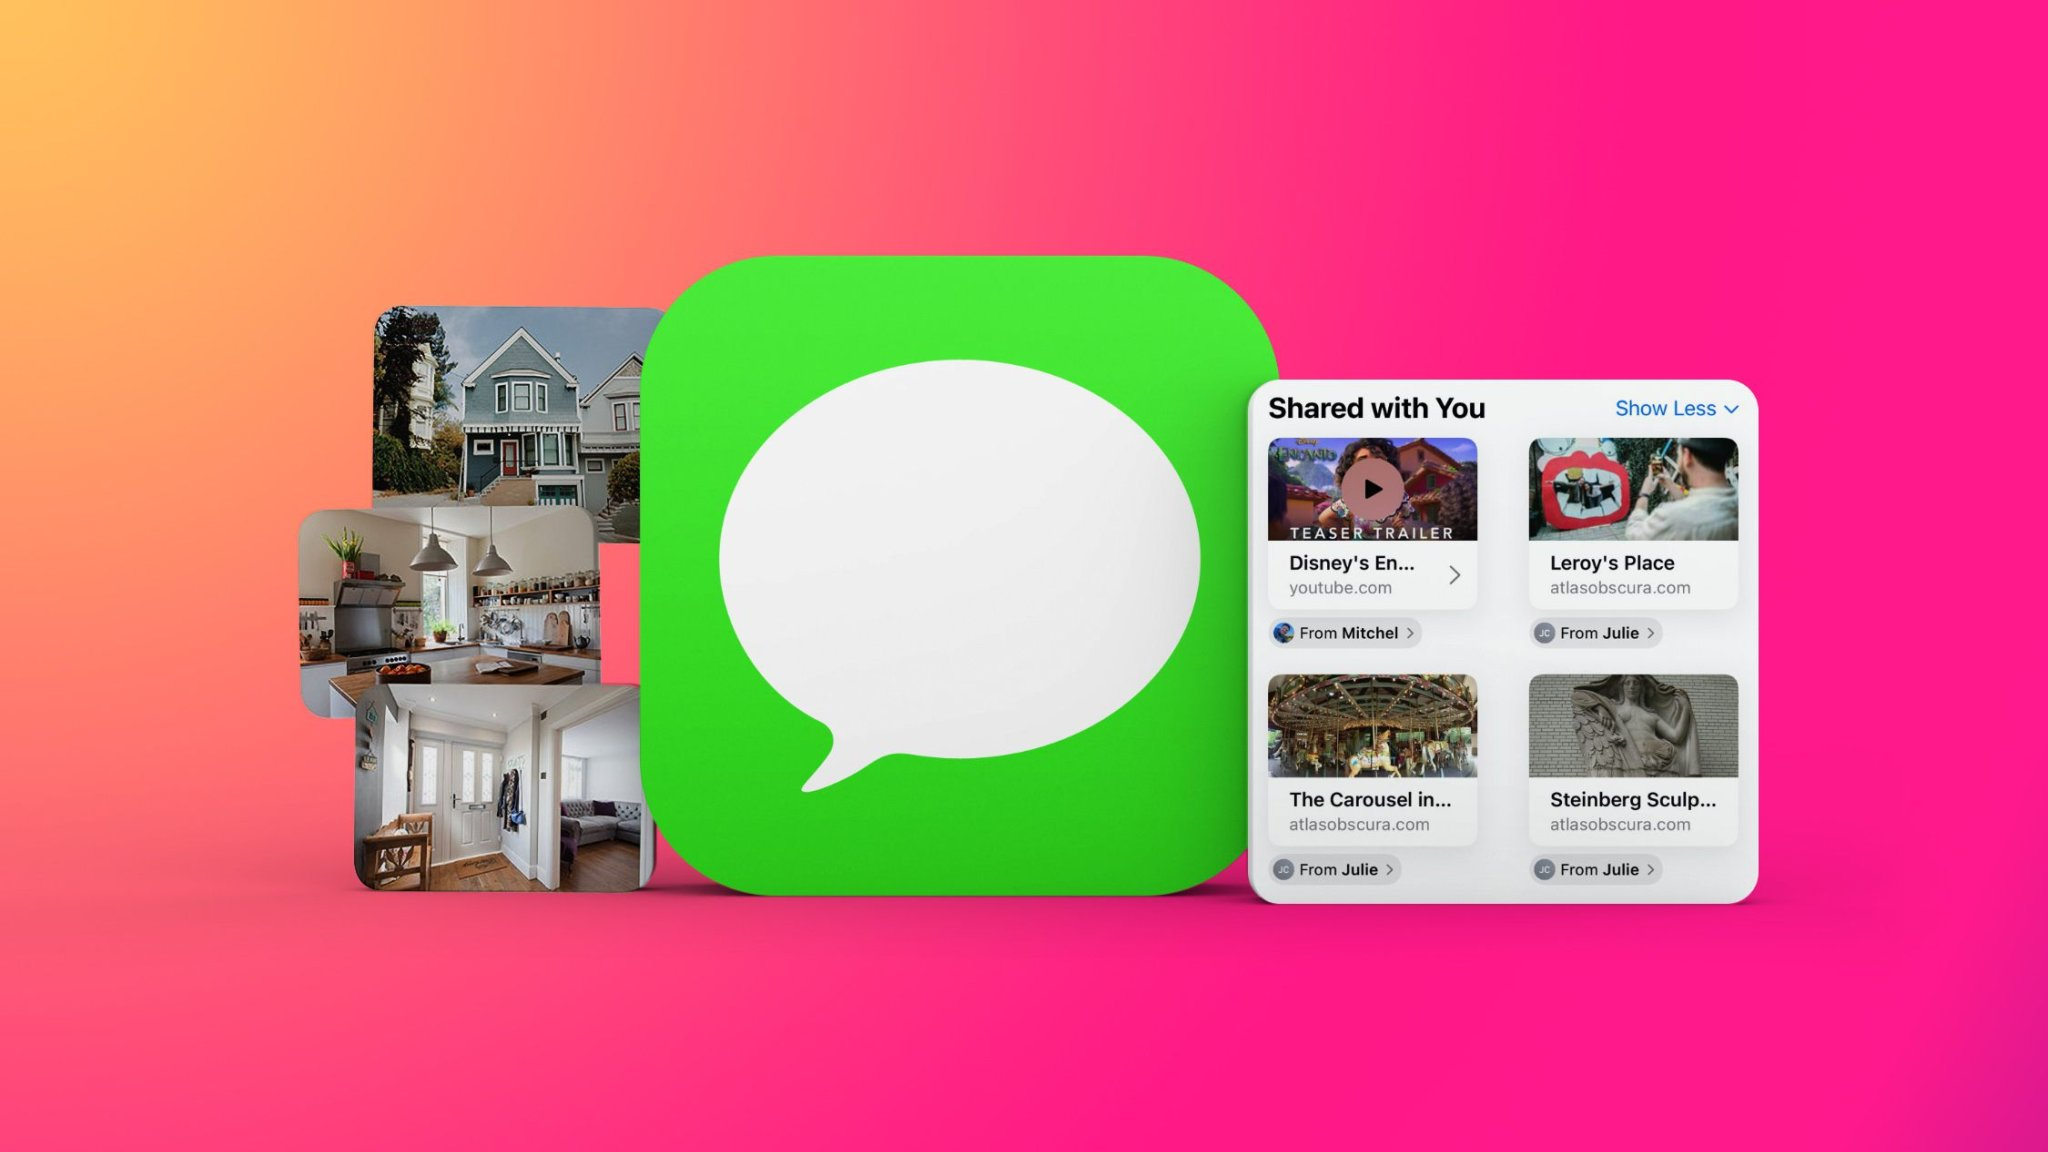 Everything New in the iOS 15 Messages App: Shared With You, Photo Collages, Memoji Updates and More